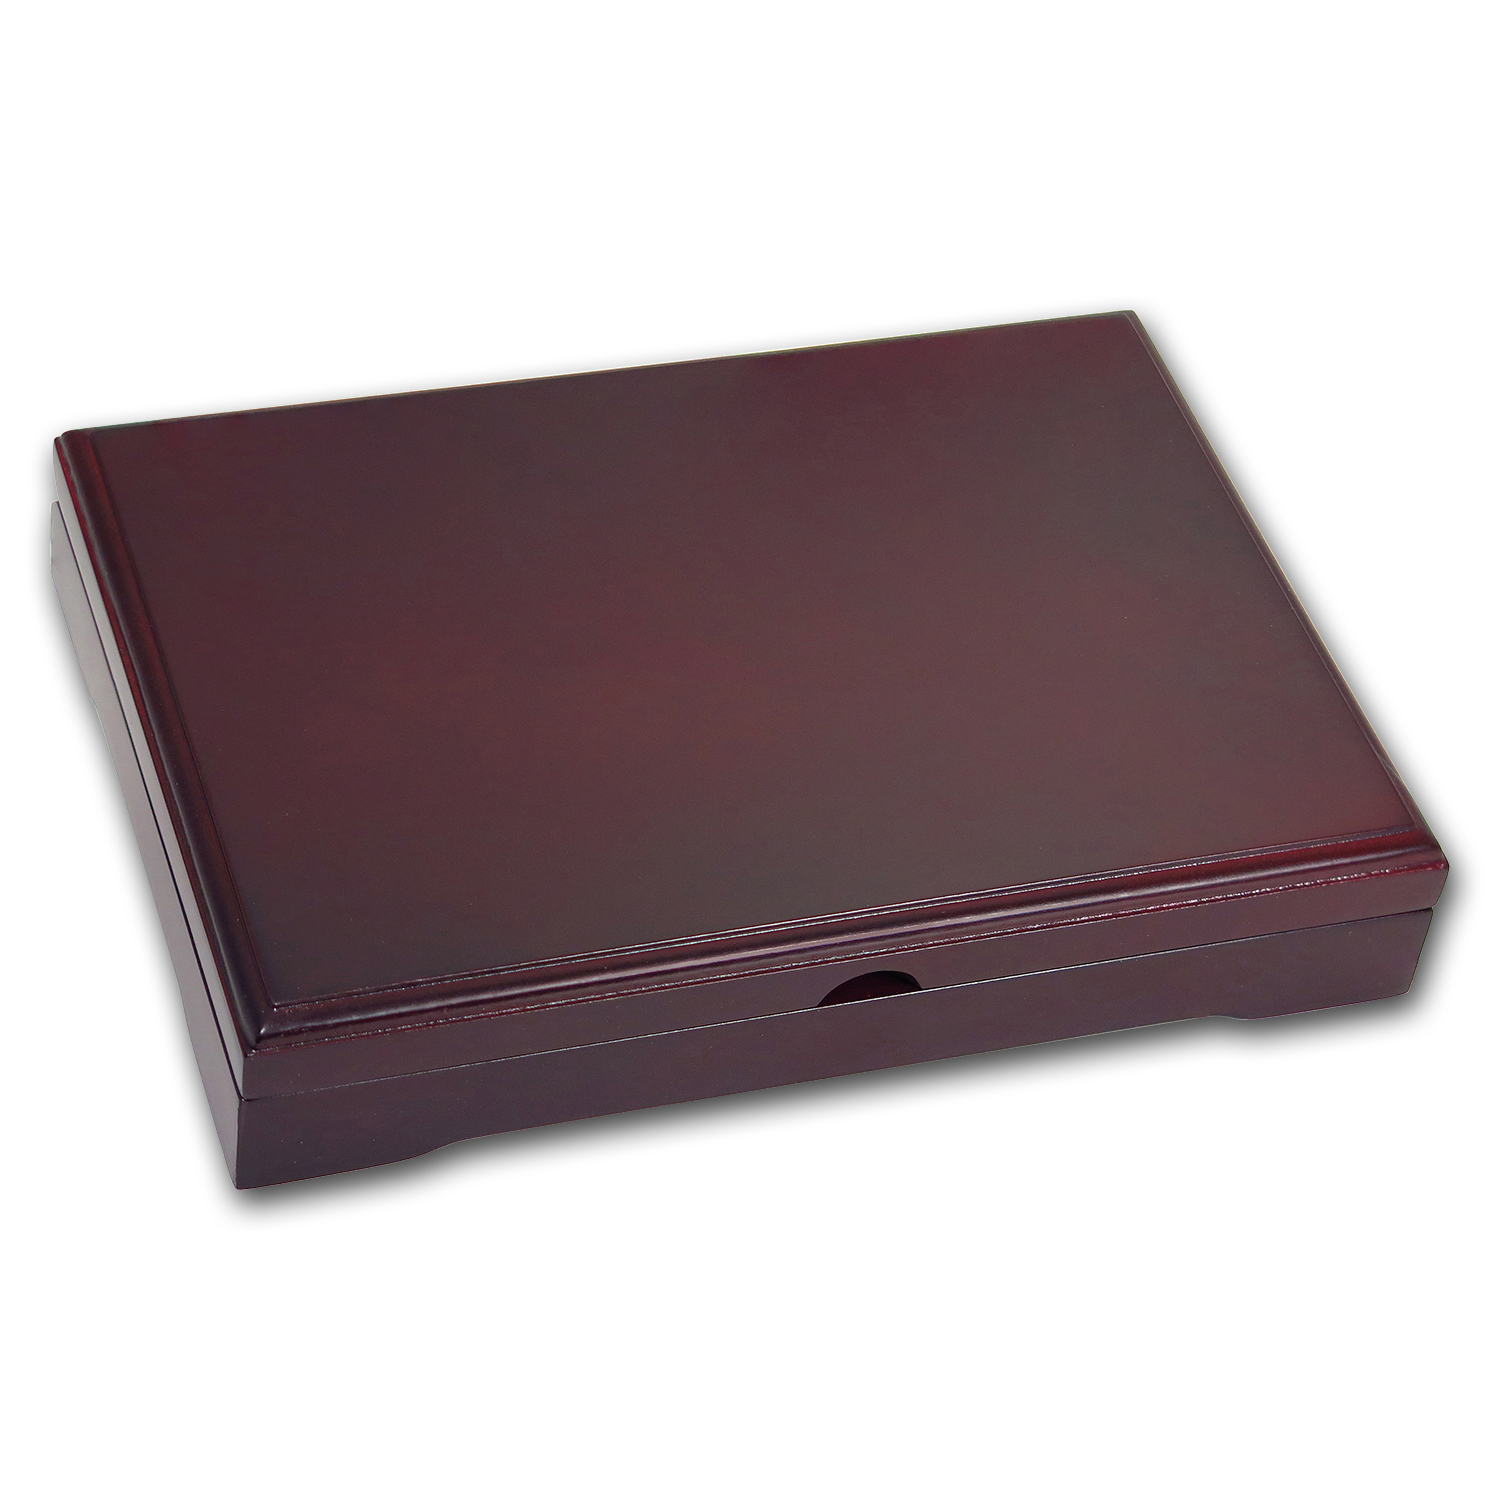 Wooden Slab Storage Box - Two Slab